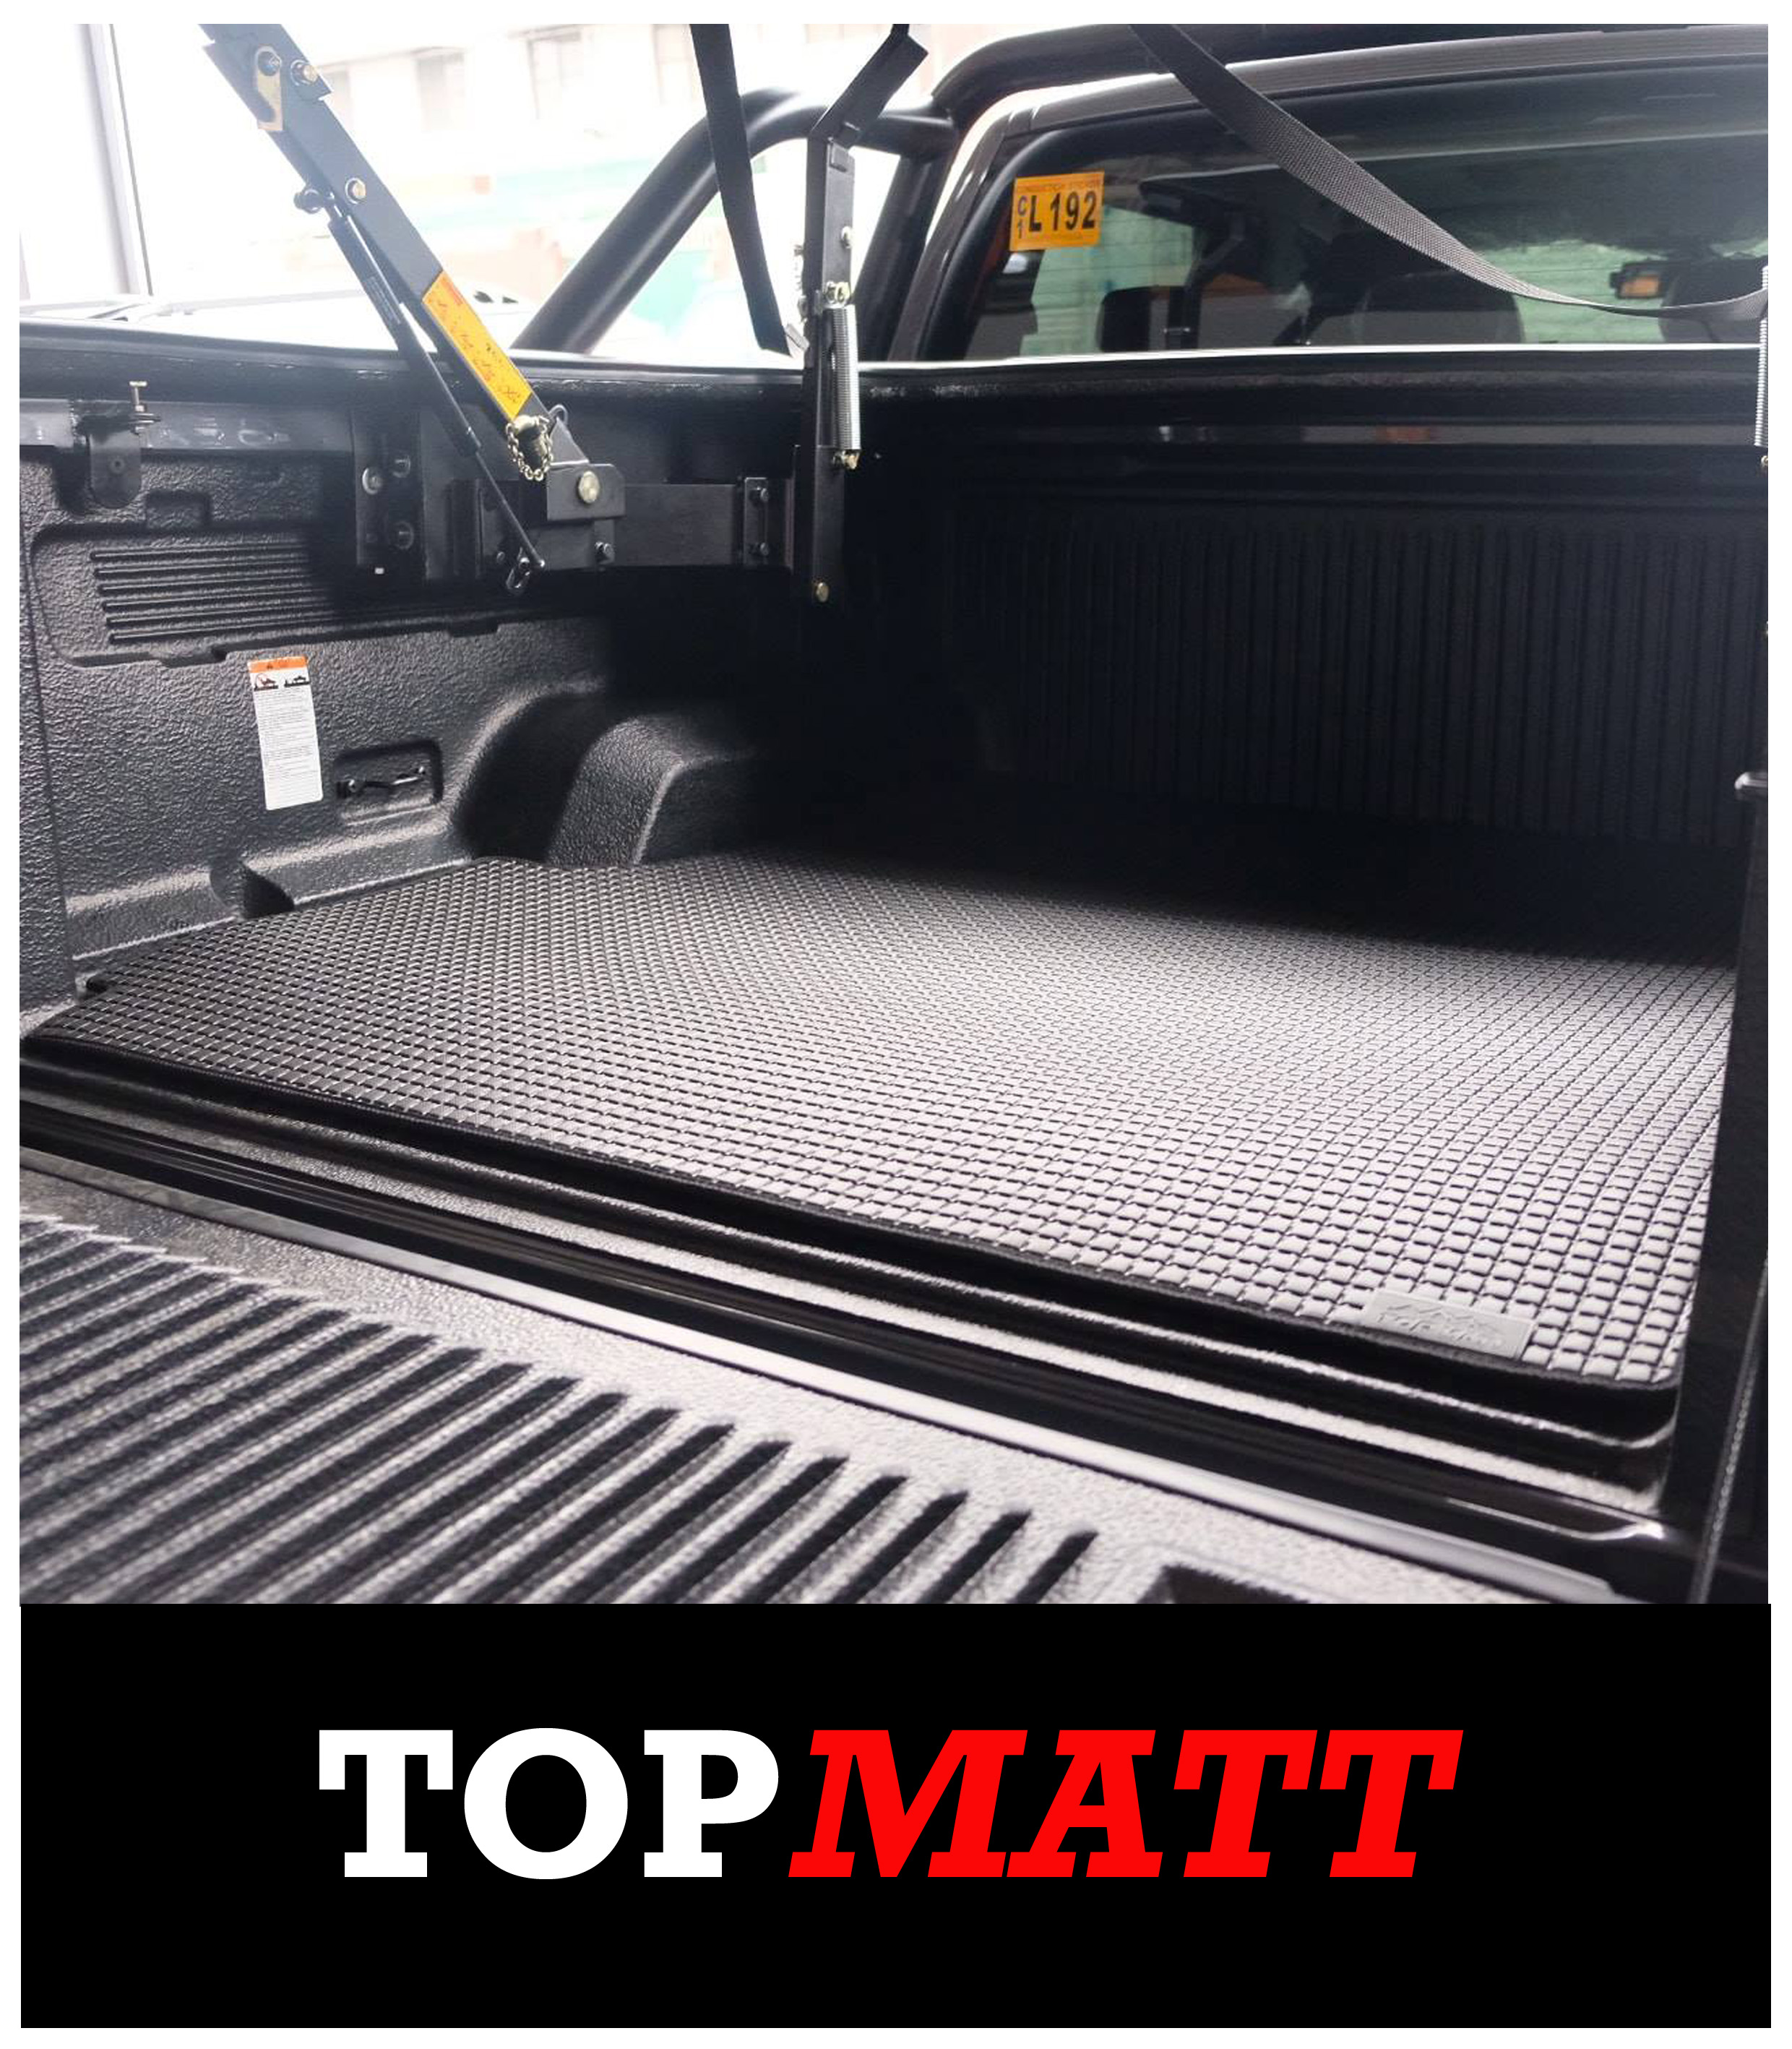 WEbsite_Amarok_TOPMATT_Thumbnail_edited-2.jpg